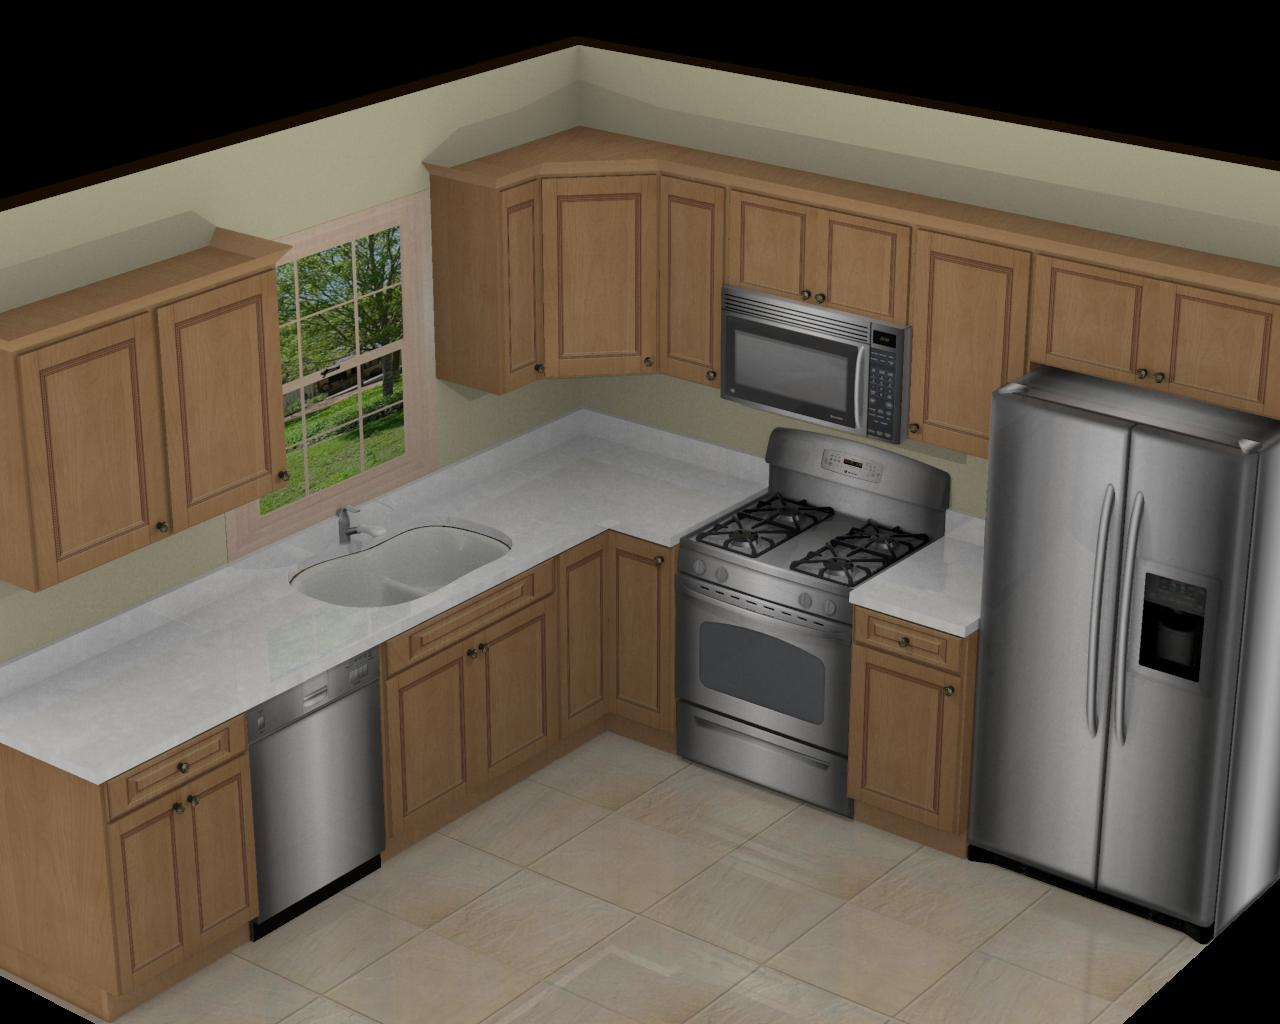 Foundation dezin decor 3d kitchen model design for L shaped kitchen design for small space